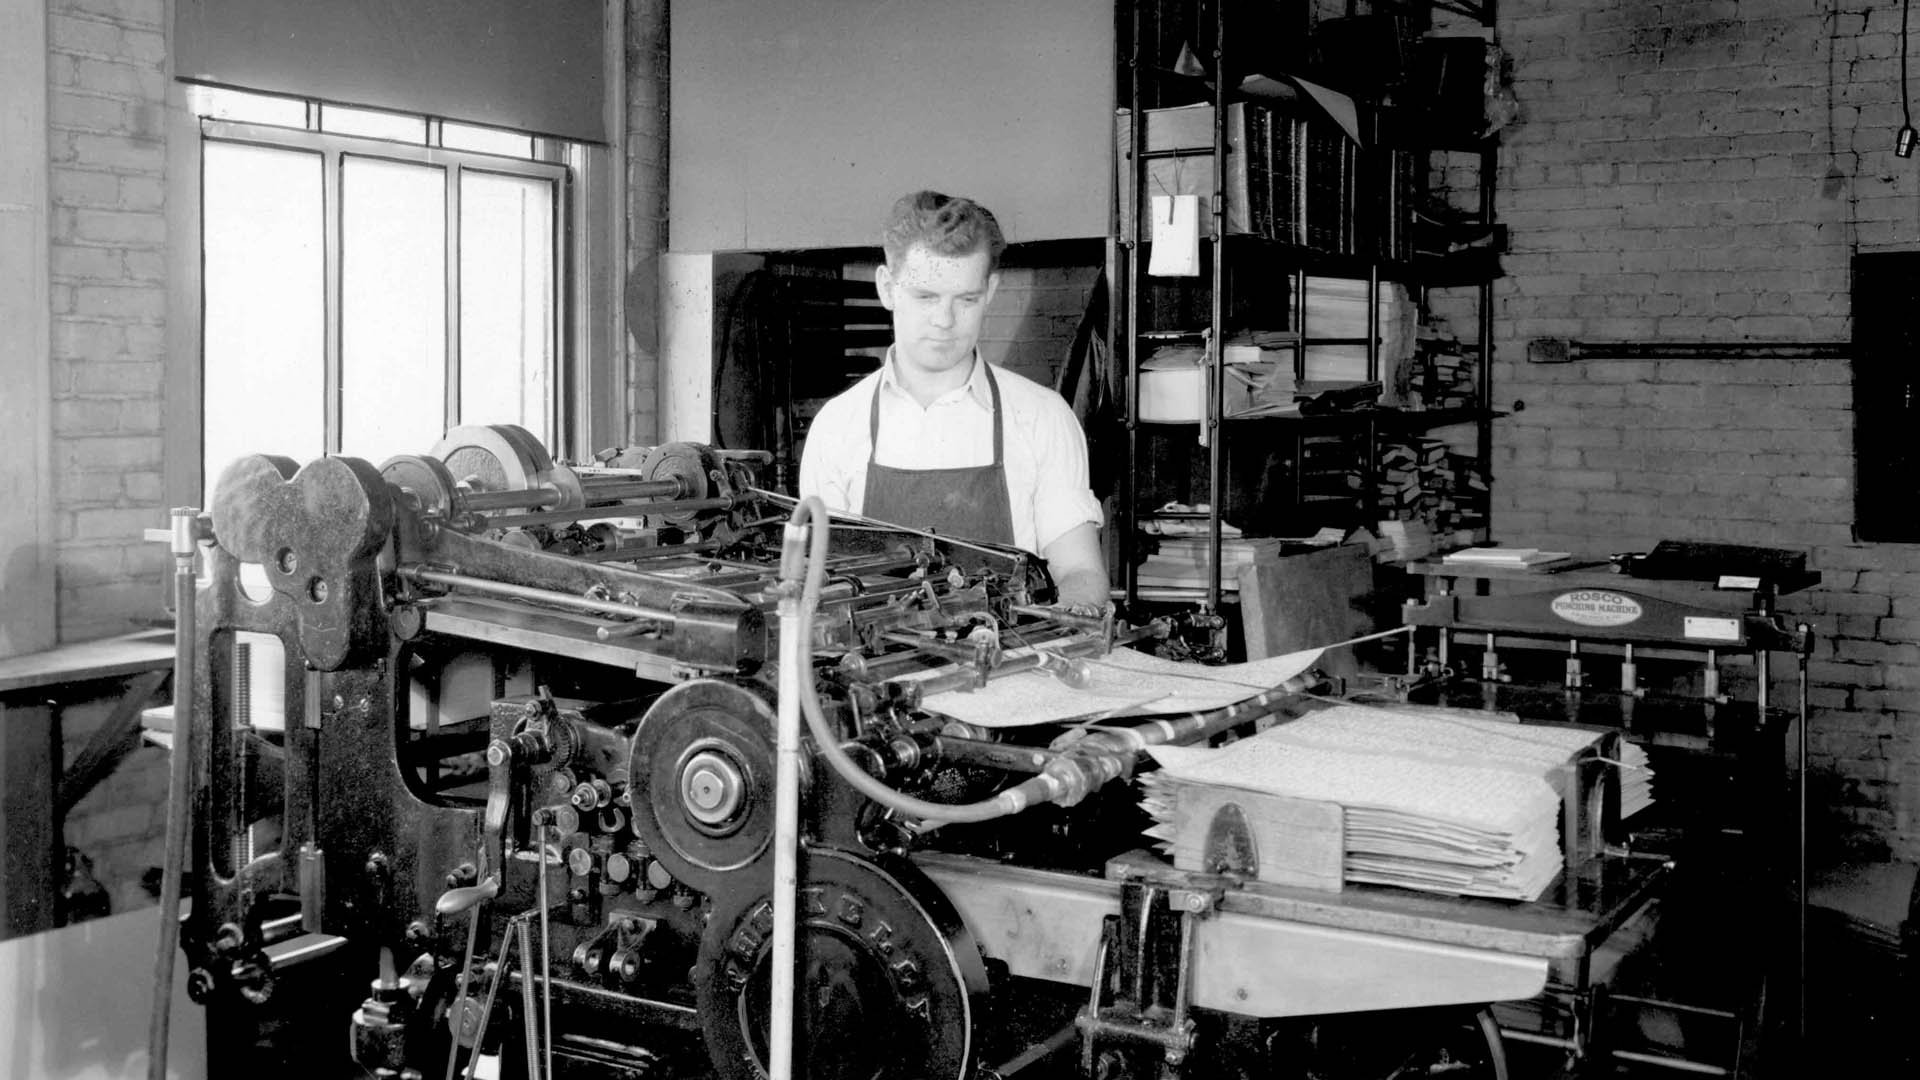 A man wearing an apron stands behind a bulky printing press watching braille pages stack up on the right in a printshop